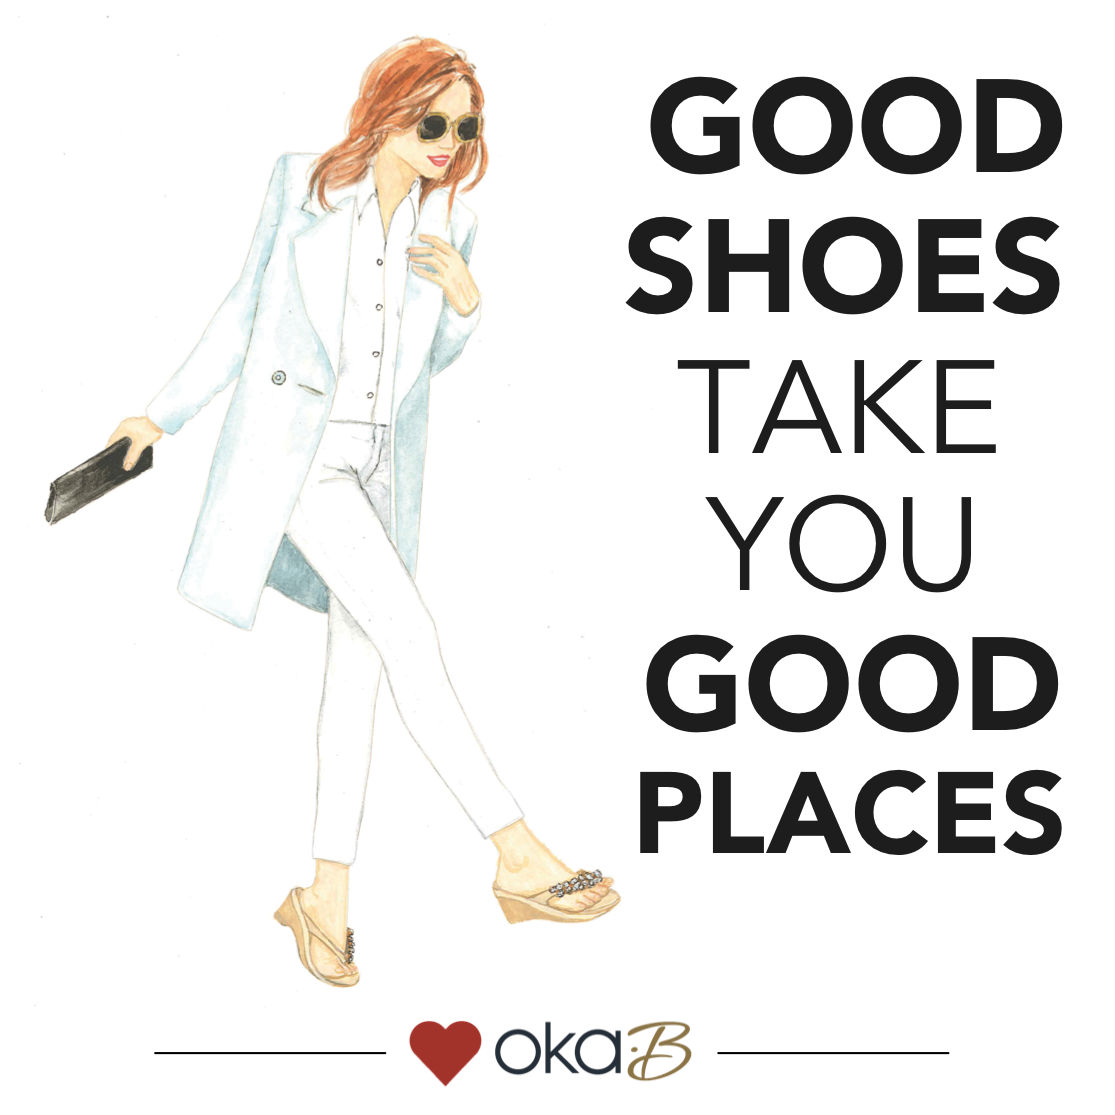 Good Shoes Take You Good Places 3 Okab Shoe Quote Qotd